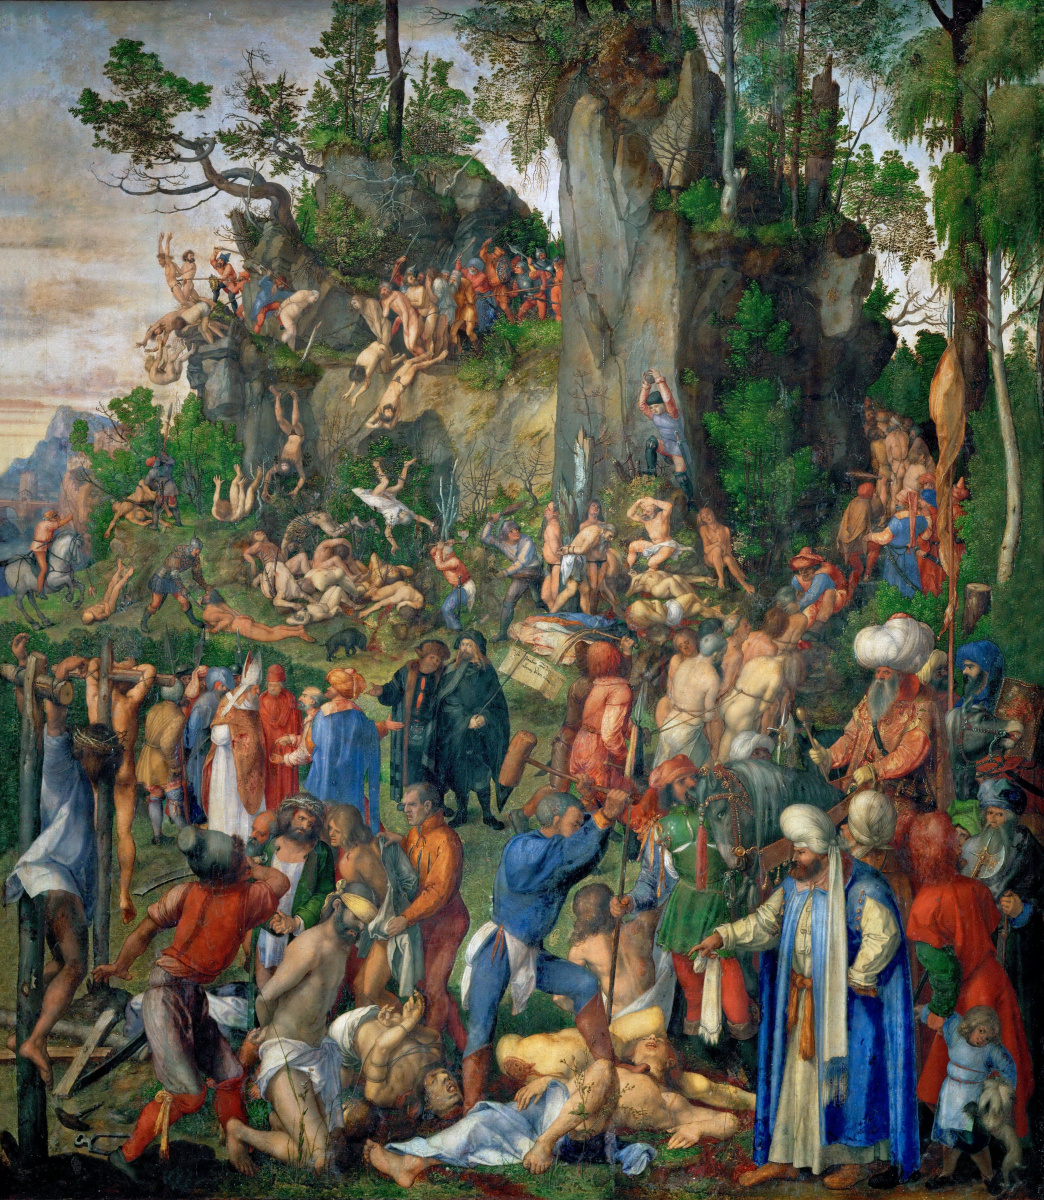 Albrecht Dürer. Martyrdom of the Ten Thousand